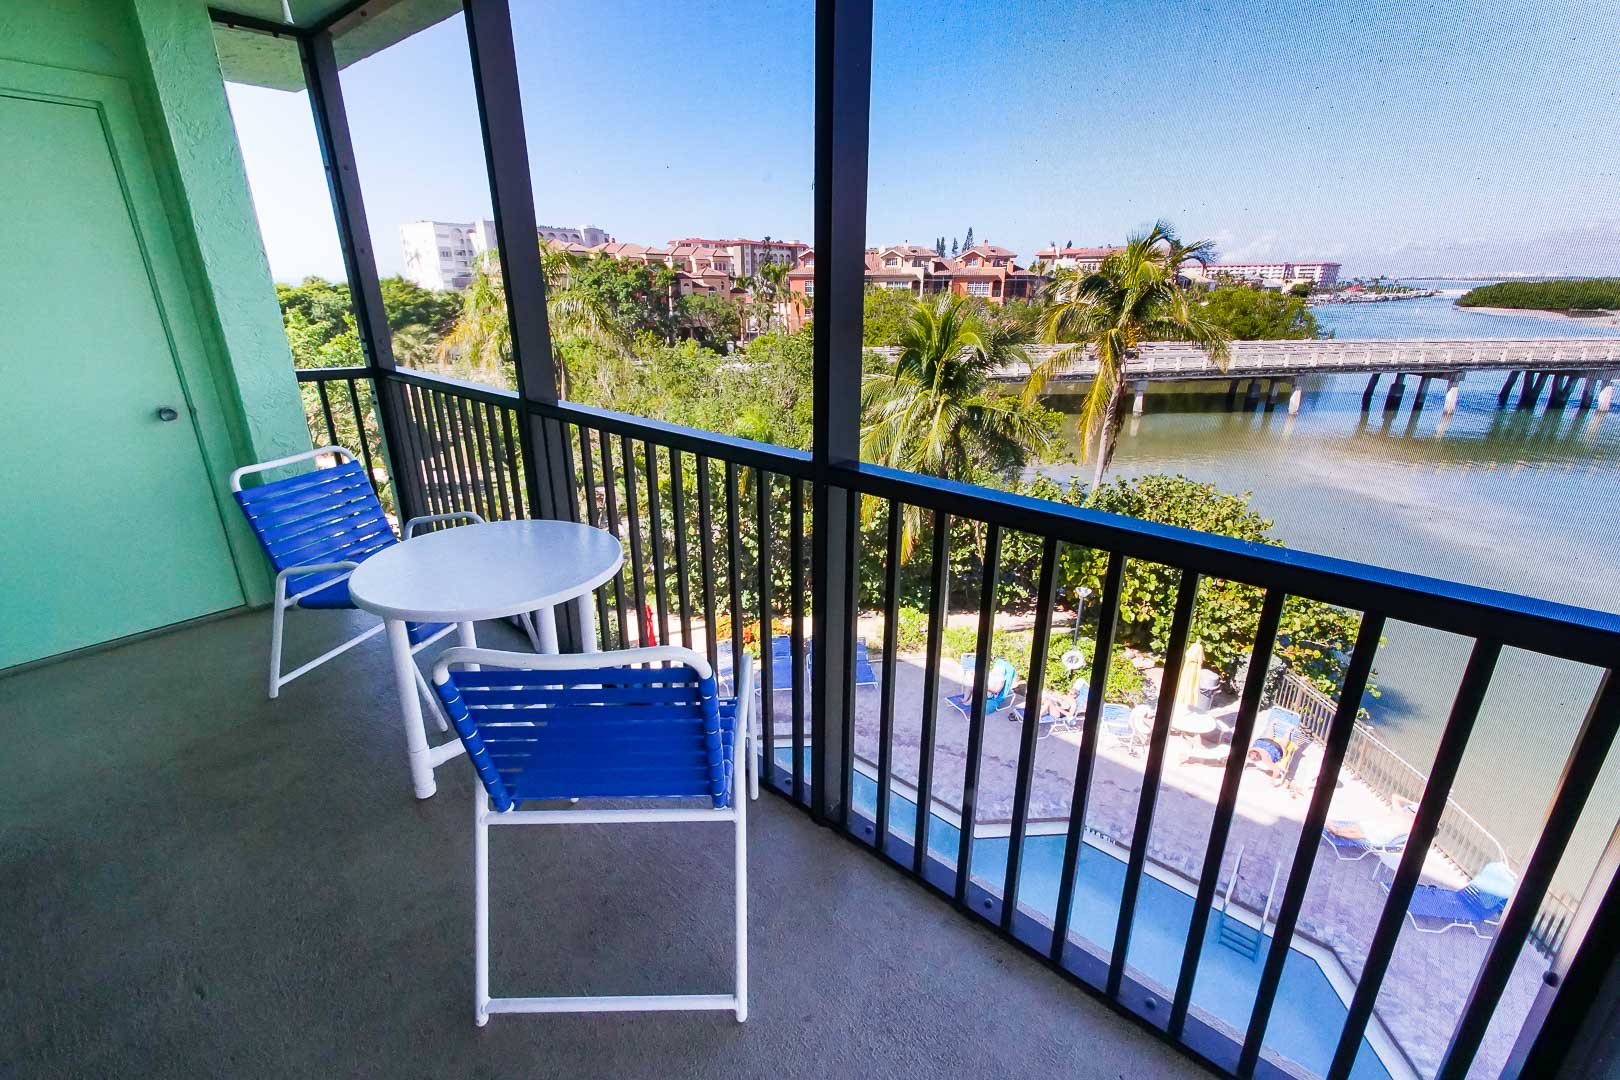 A beautiful beach front balcony at VRI's Bonita Resort and Club in Florida.